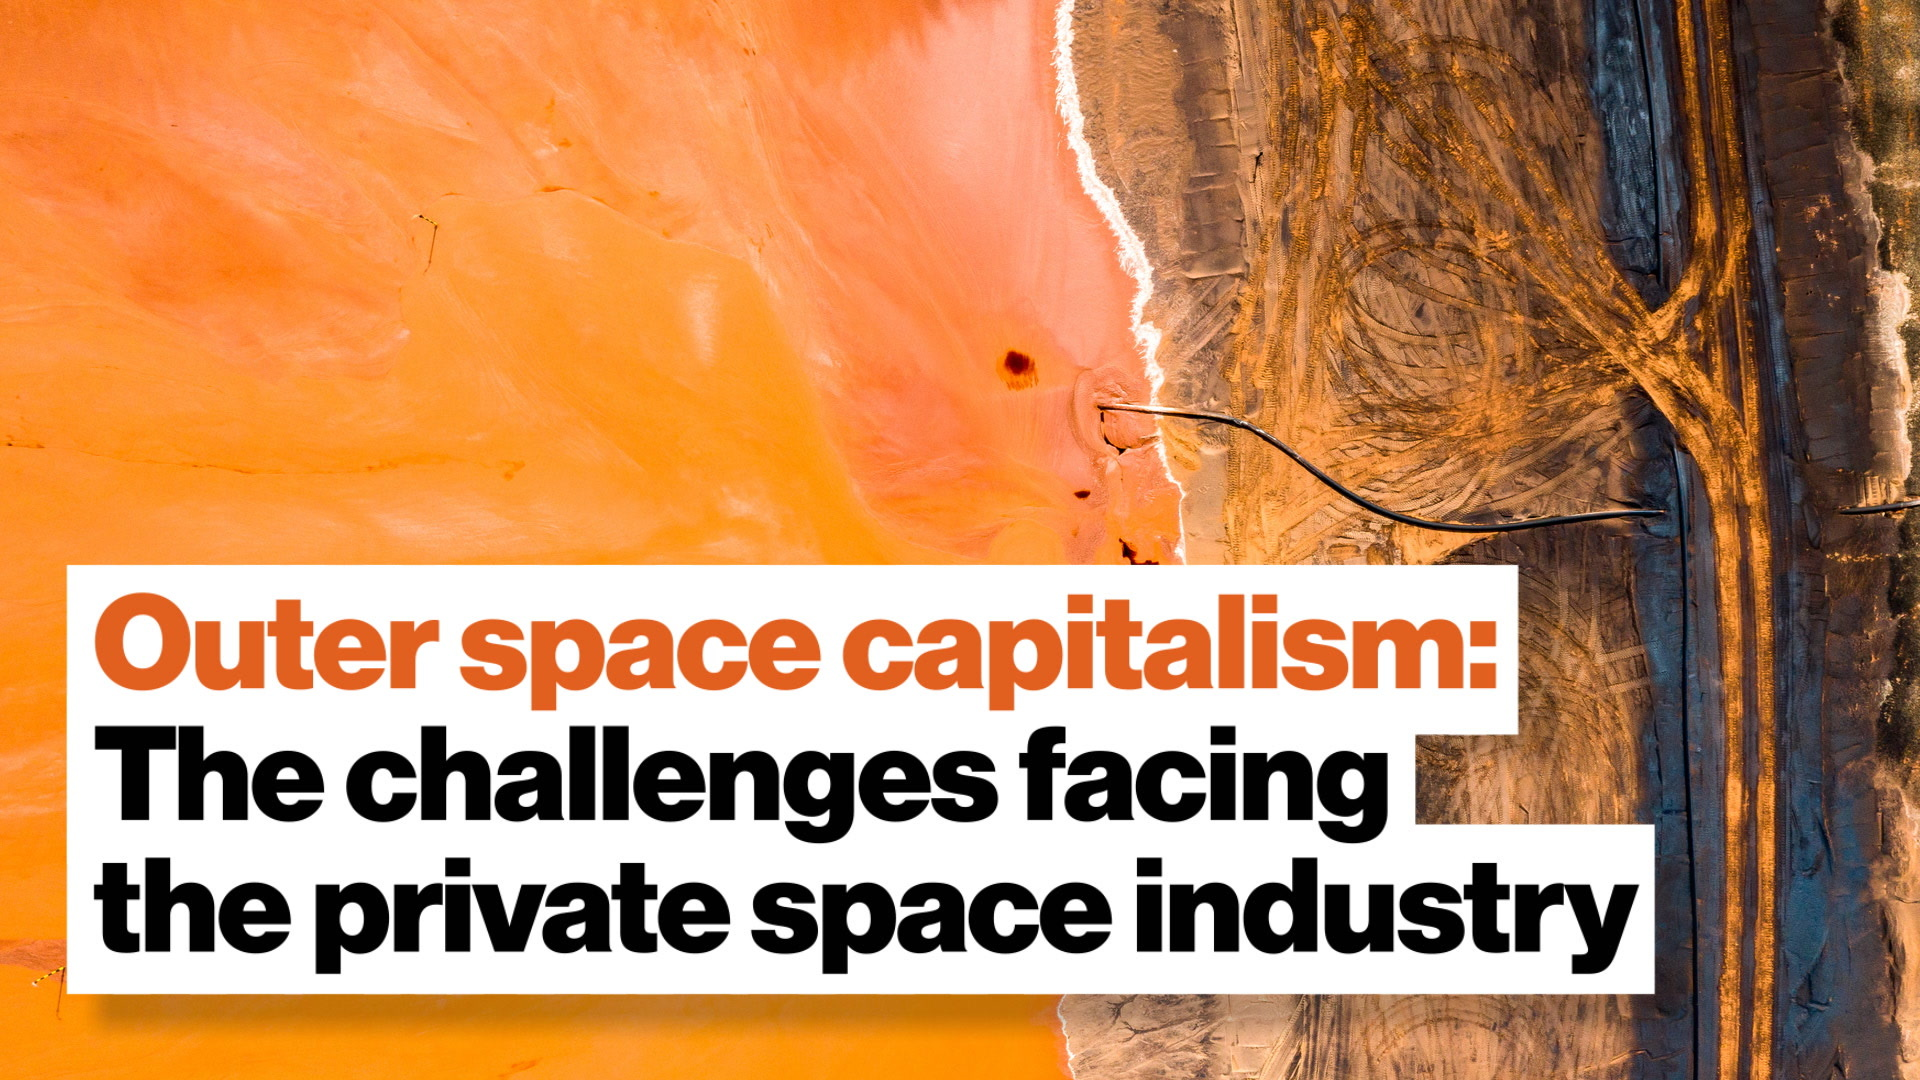 Outer space capitalism: The legal and technical challenges facing the private space industry